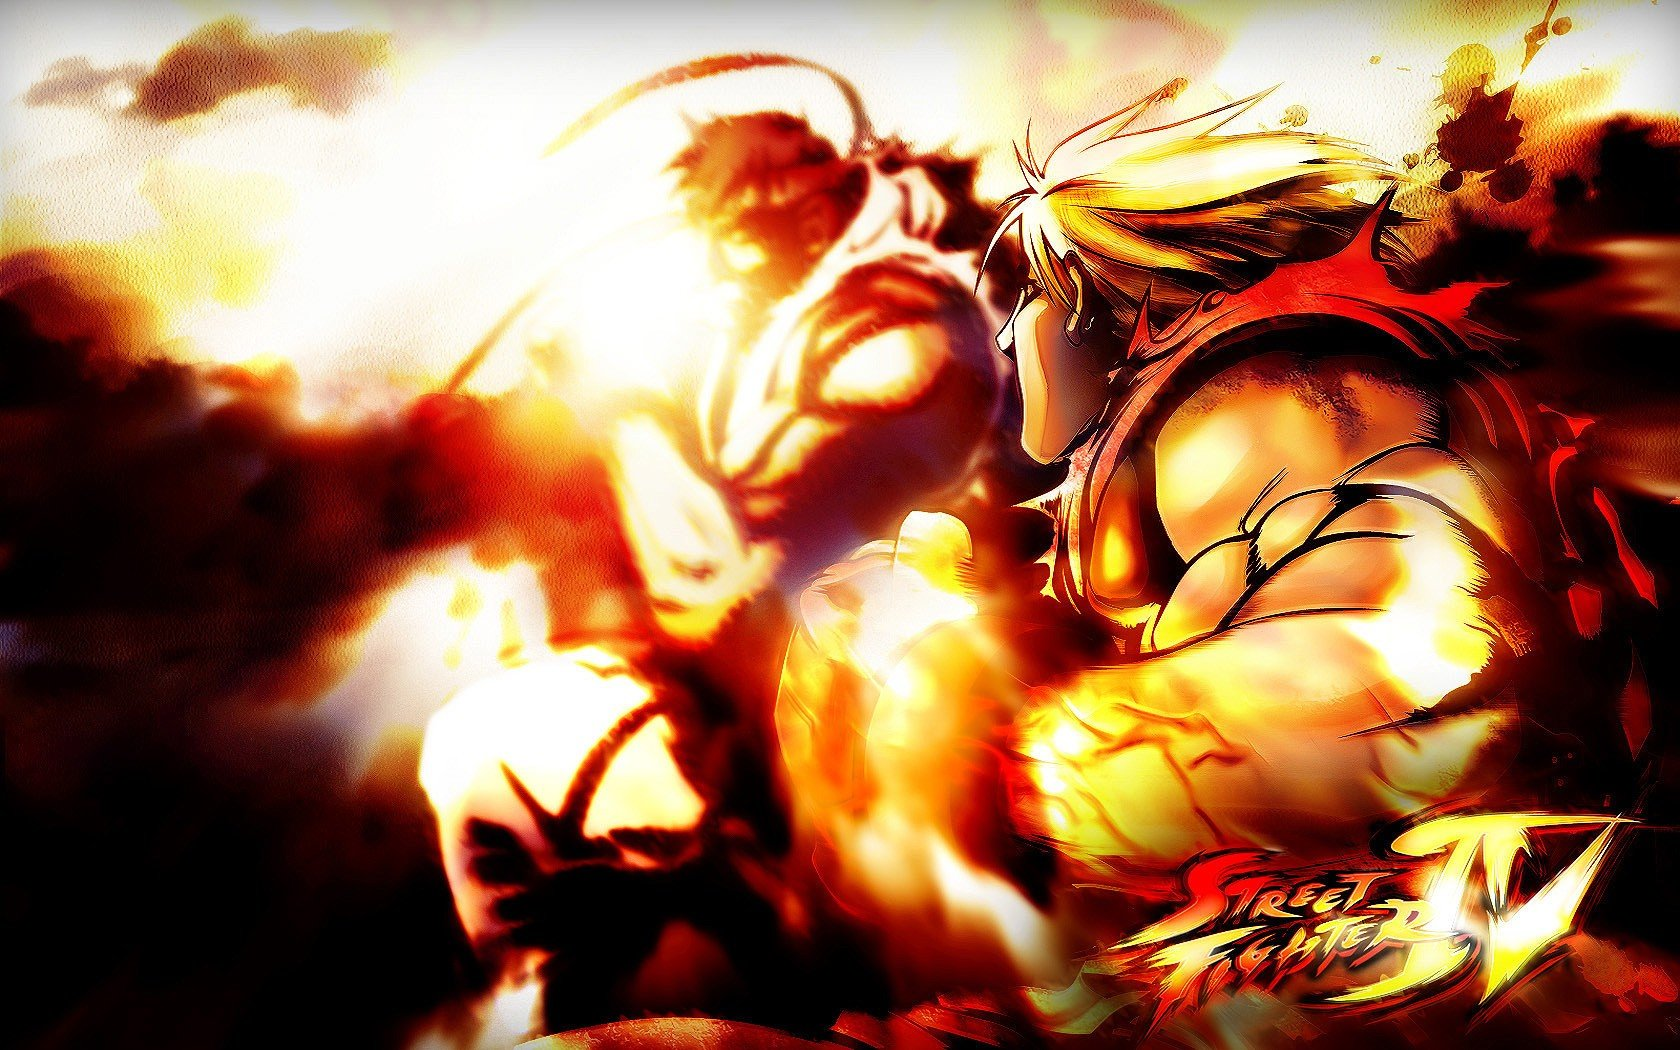 ken street fighter wallpaper - photo #12